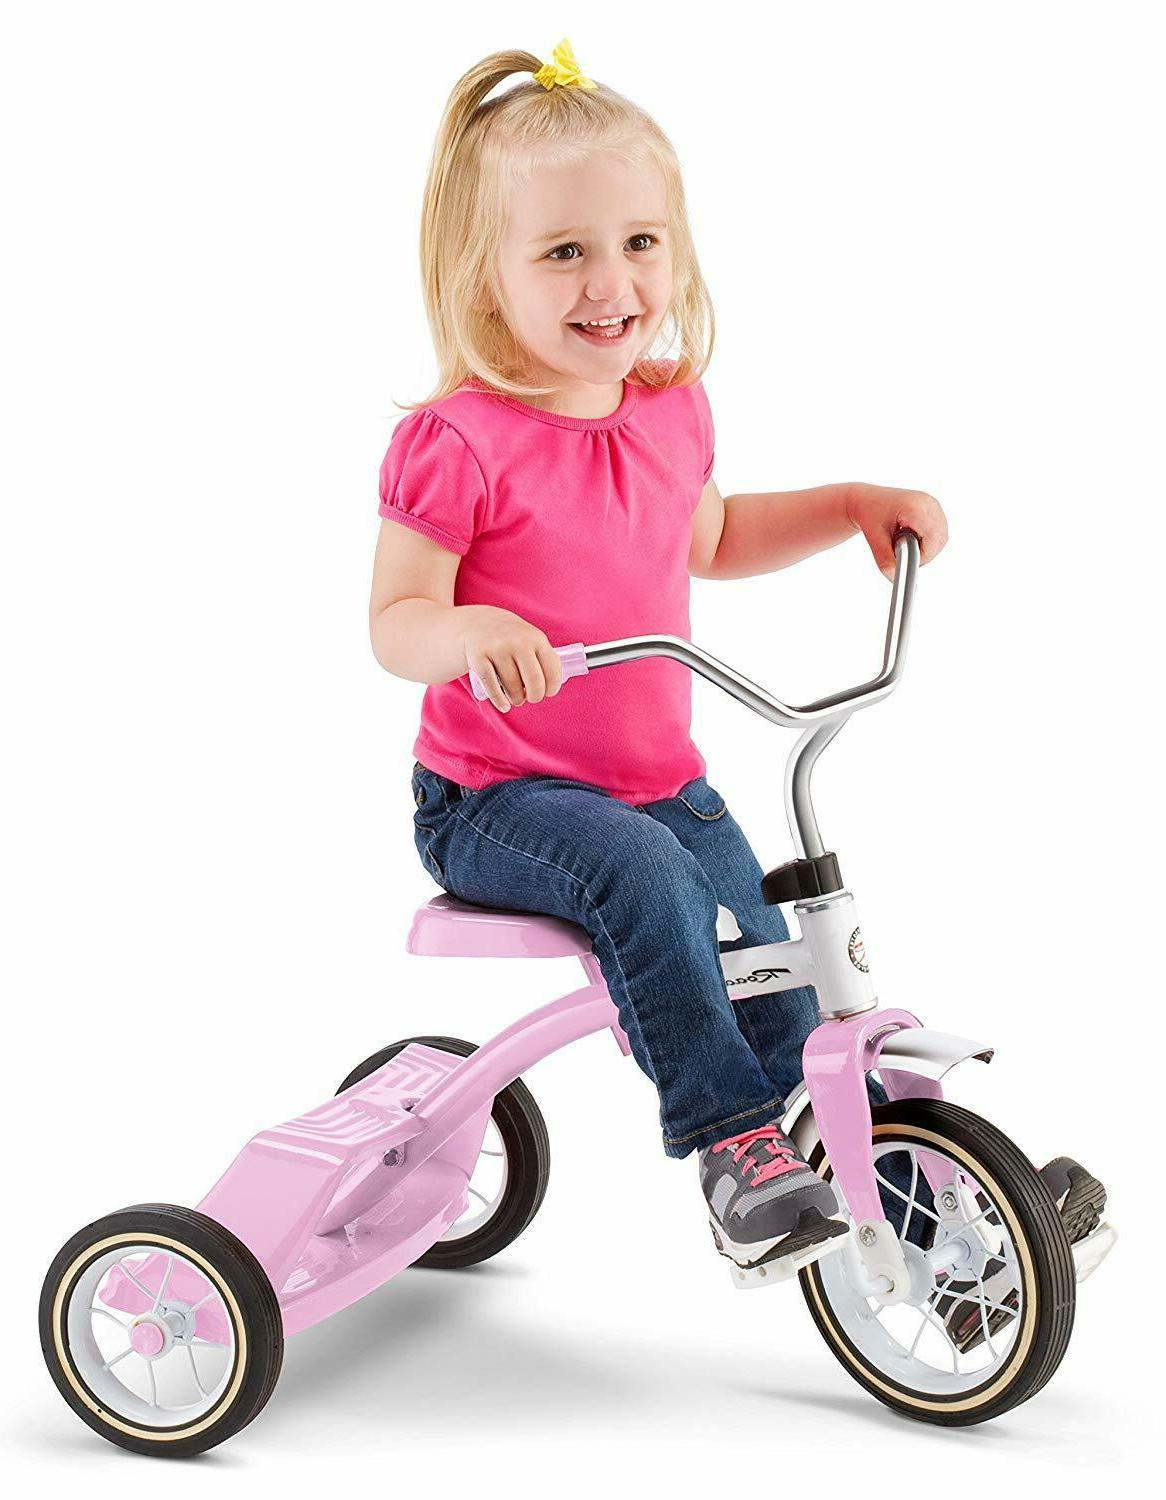 Birthday Gift Roadmaster Dual Deck Tricycle Road Bicycle For